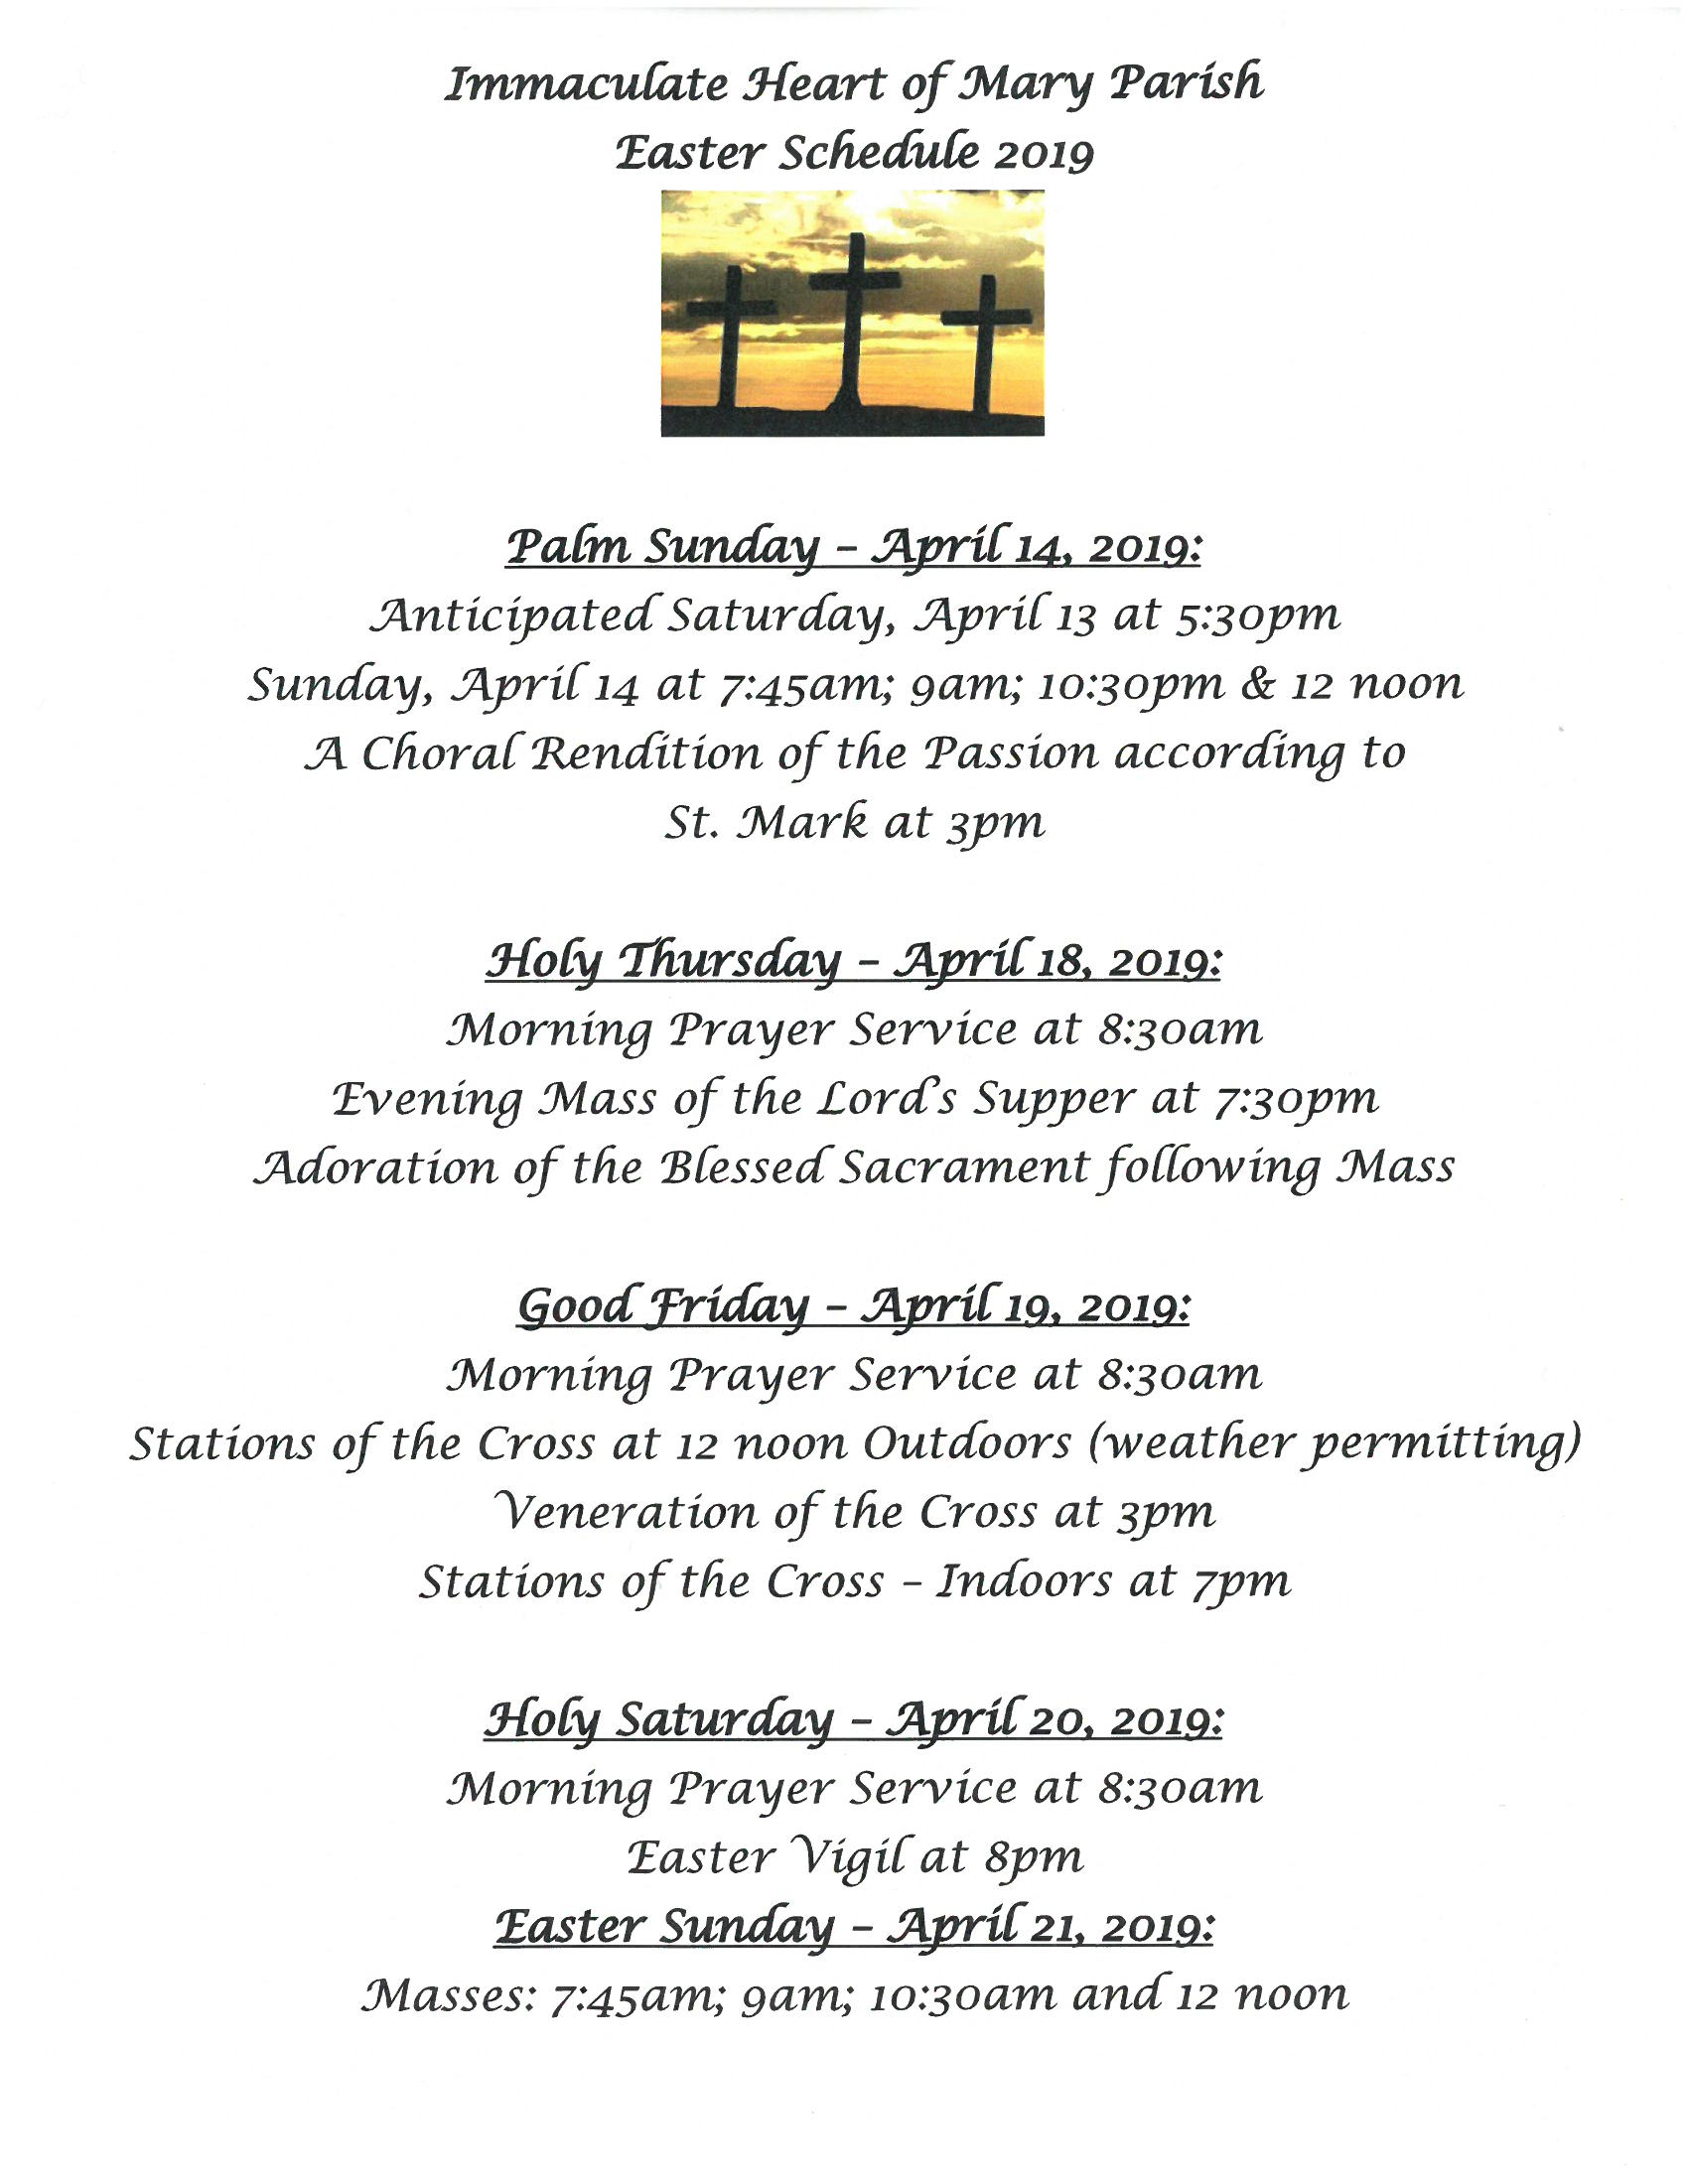 Holy week schedule 2019.jpg